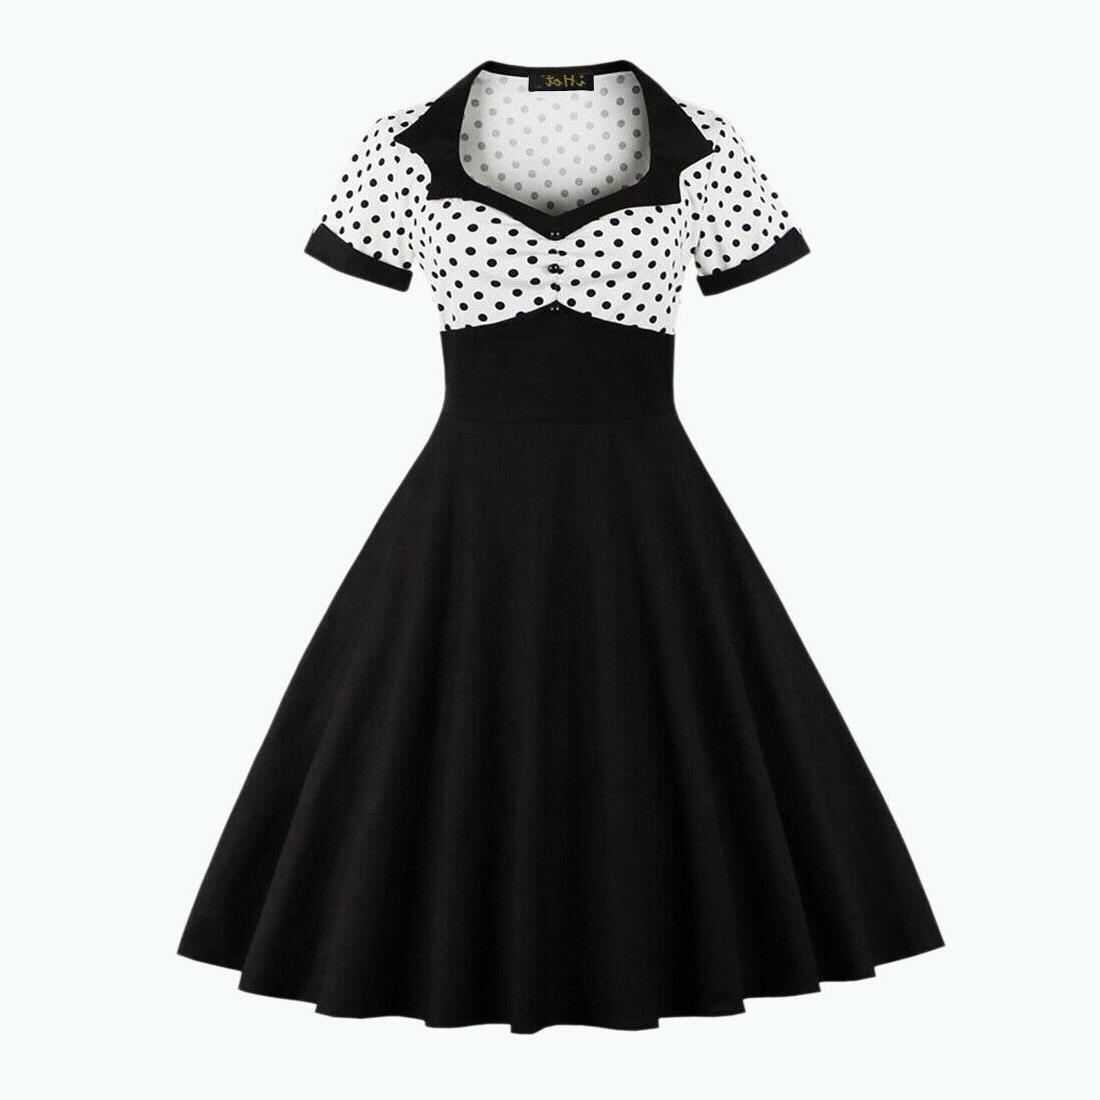 50s 60s Women Swing Vintage Retro Pinup Rockabilly Party